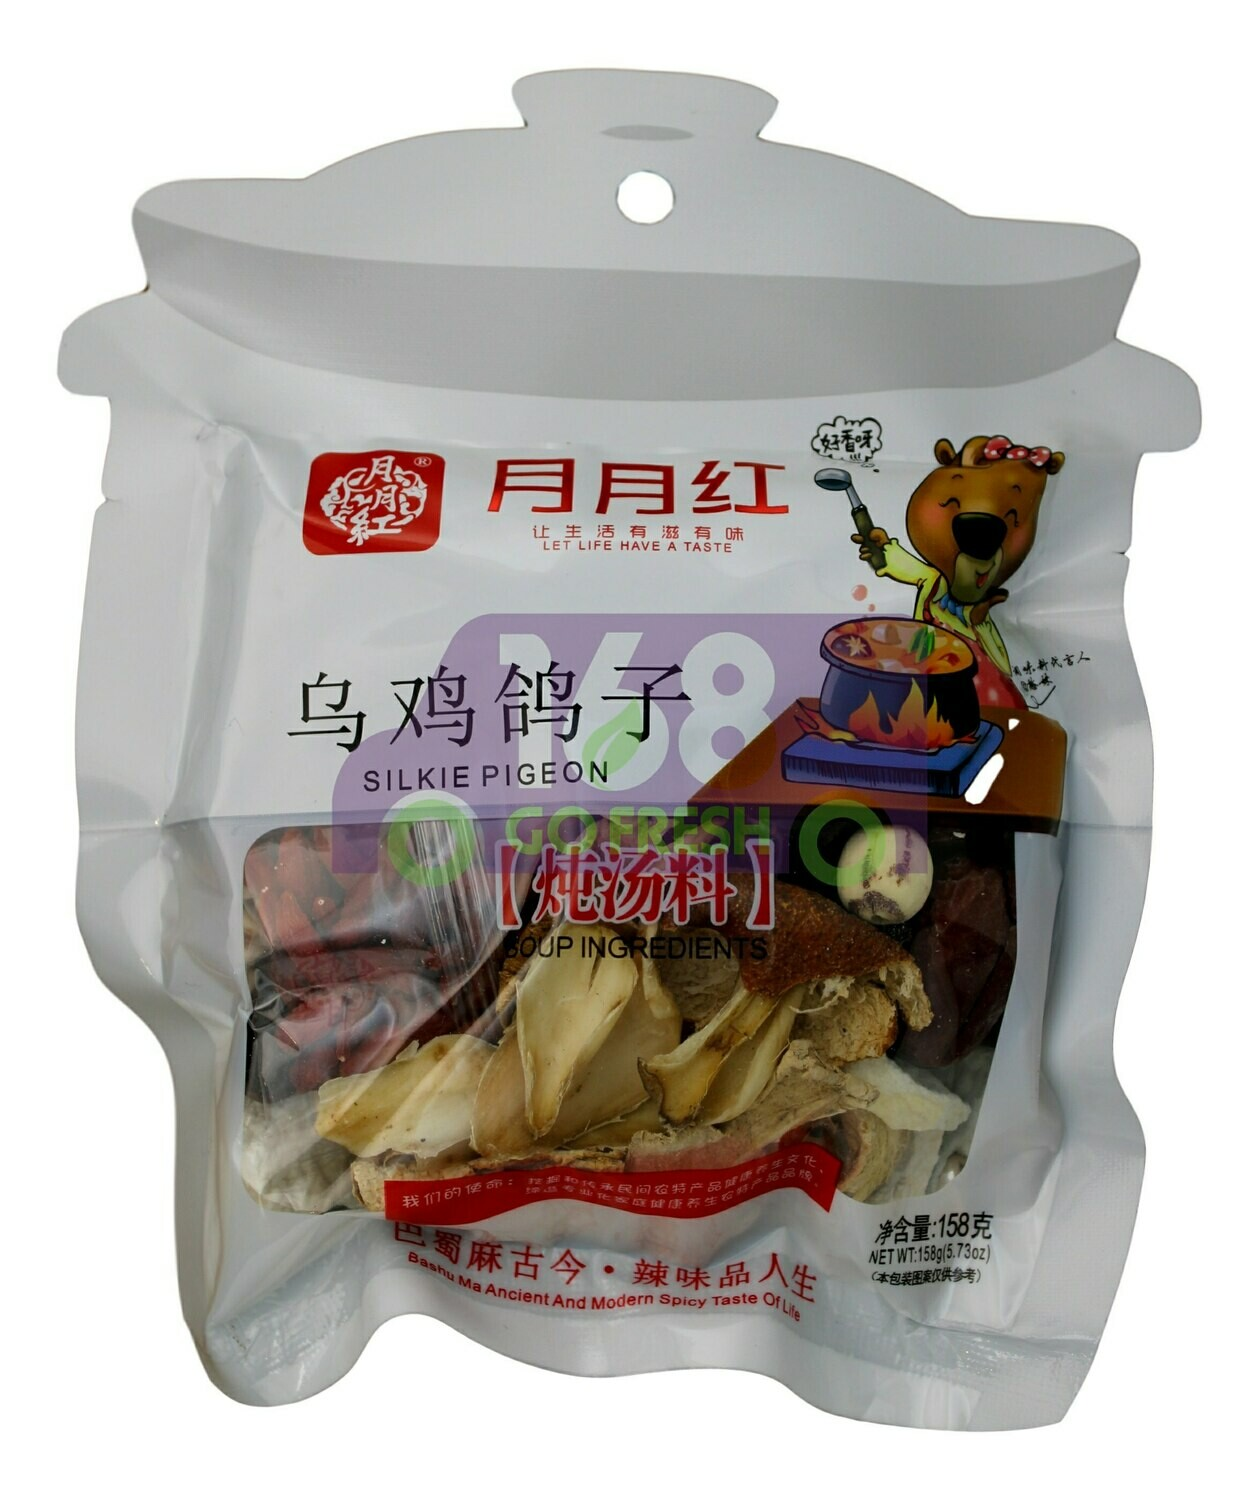 DRIED SILKIE PIGEON SOUP INGREDIENT 月月红乌鸡鸽子炖汤料(158G)